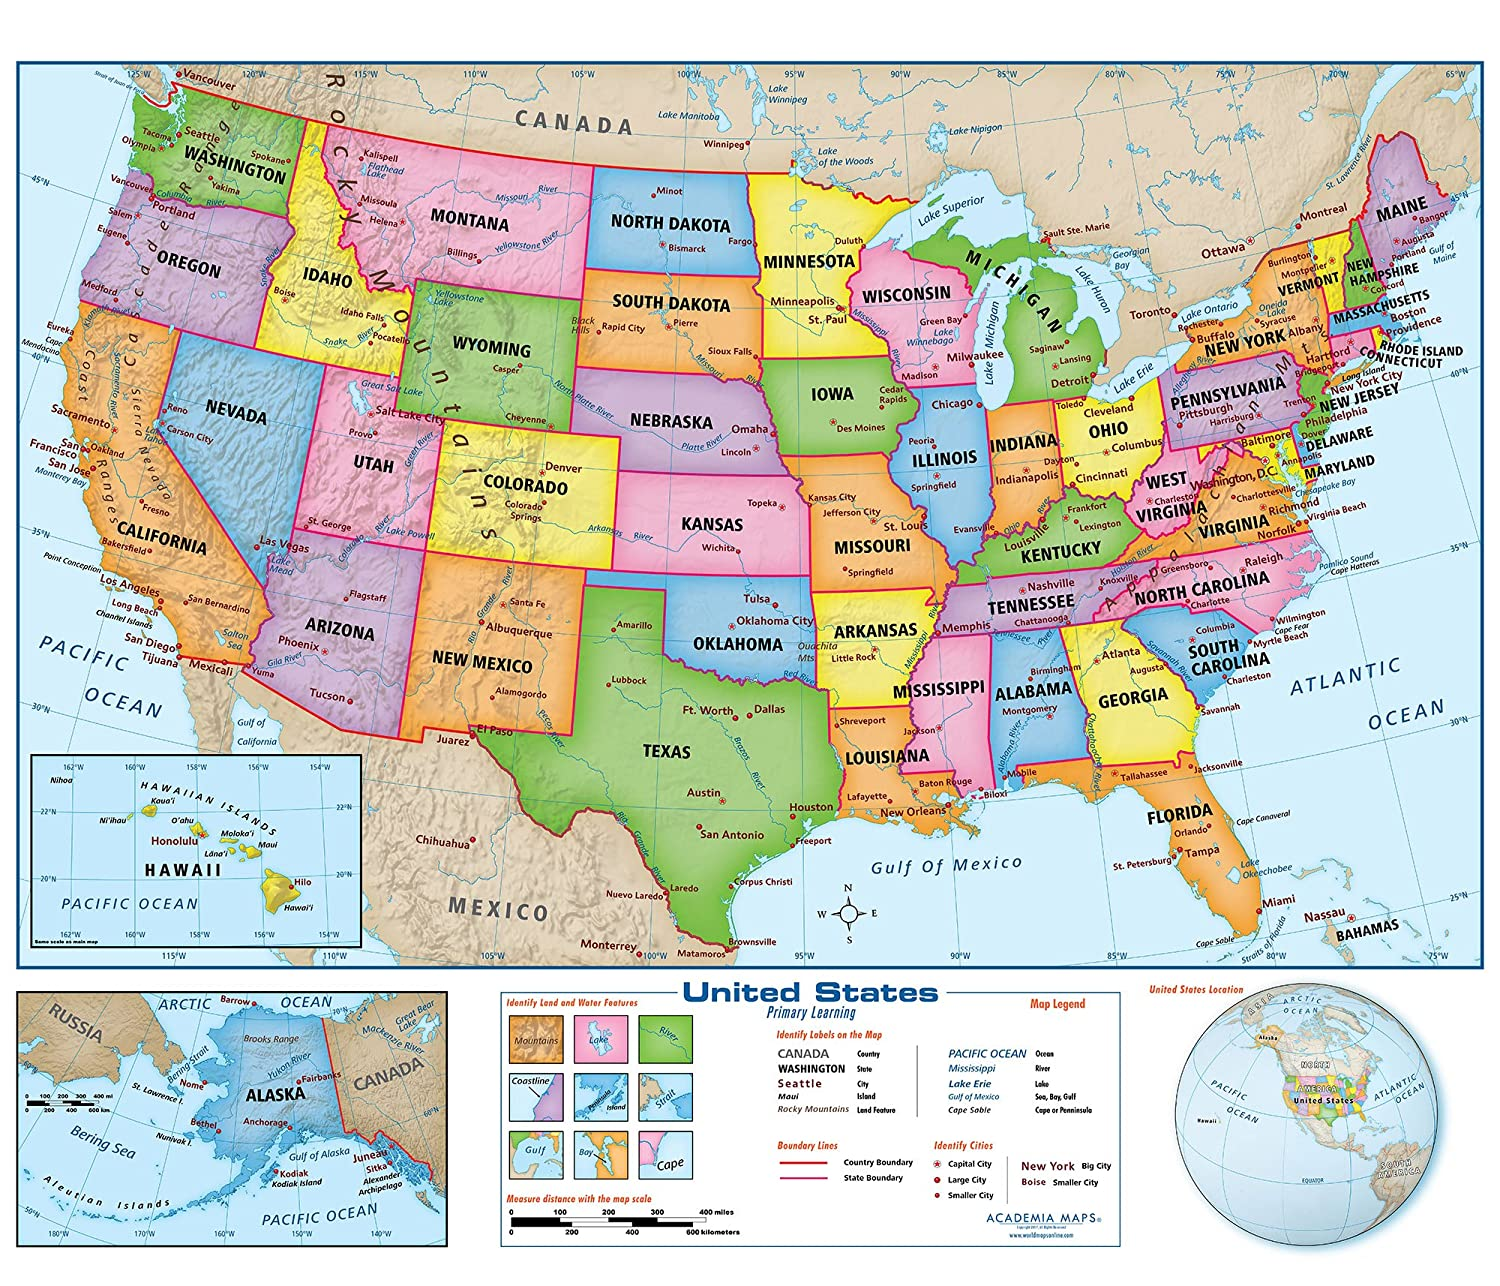 Amazon.com : United States Wall Map Poster - Extra Large 60\